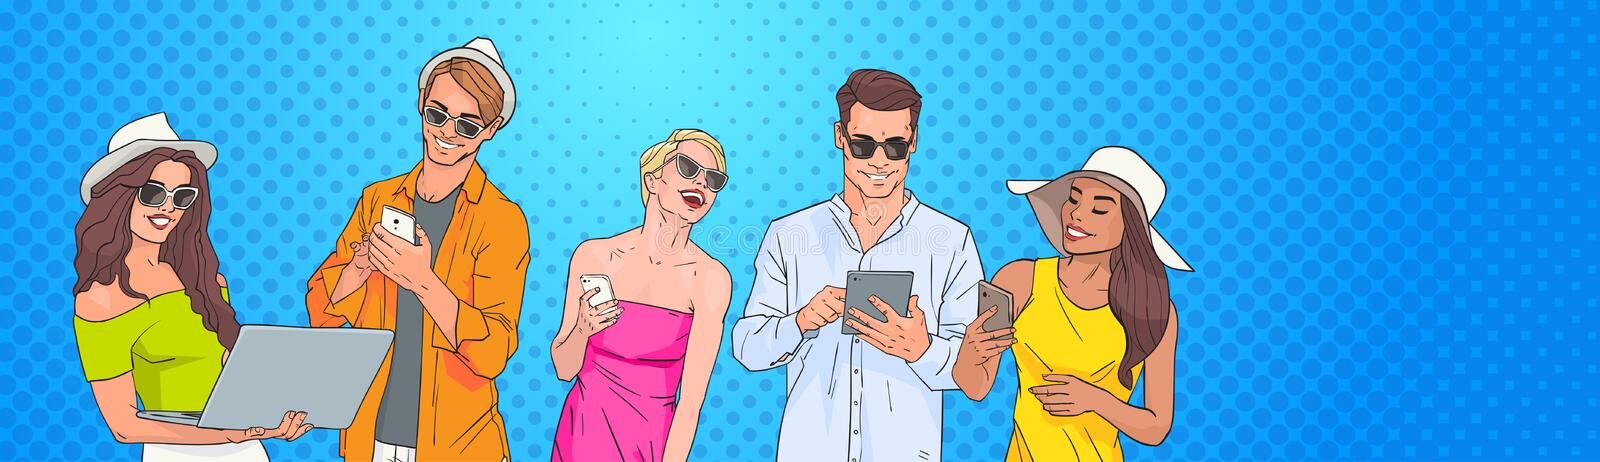 People Group Use Cell Smart Phone Tablet Laptop Computer Chatting Online Over Pop Art Colorful Retro Background vector illustration